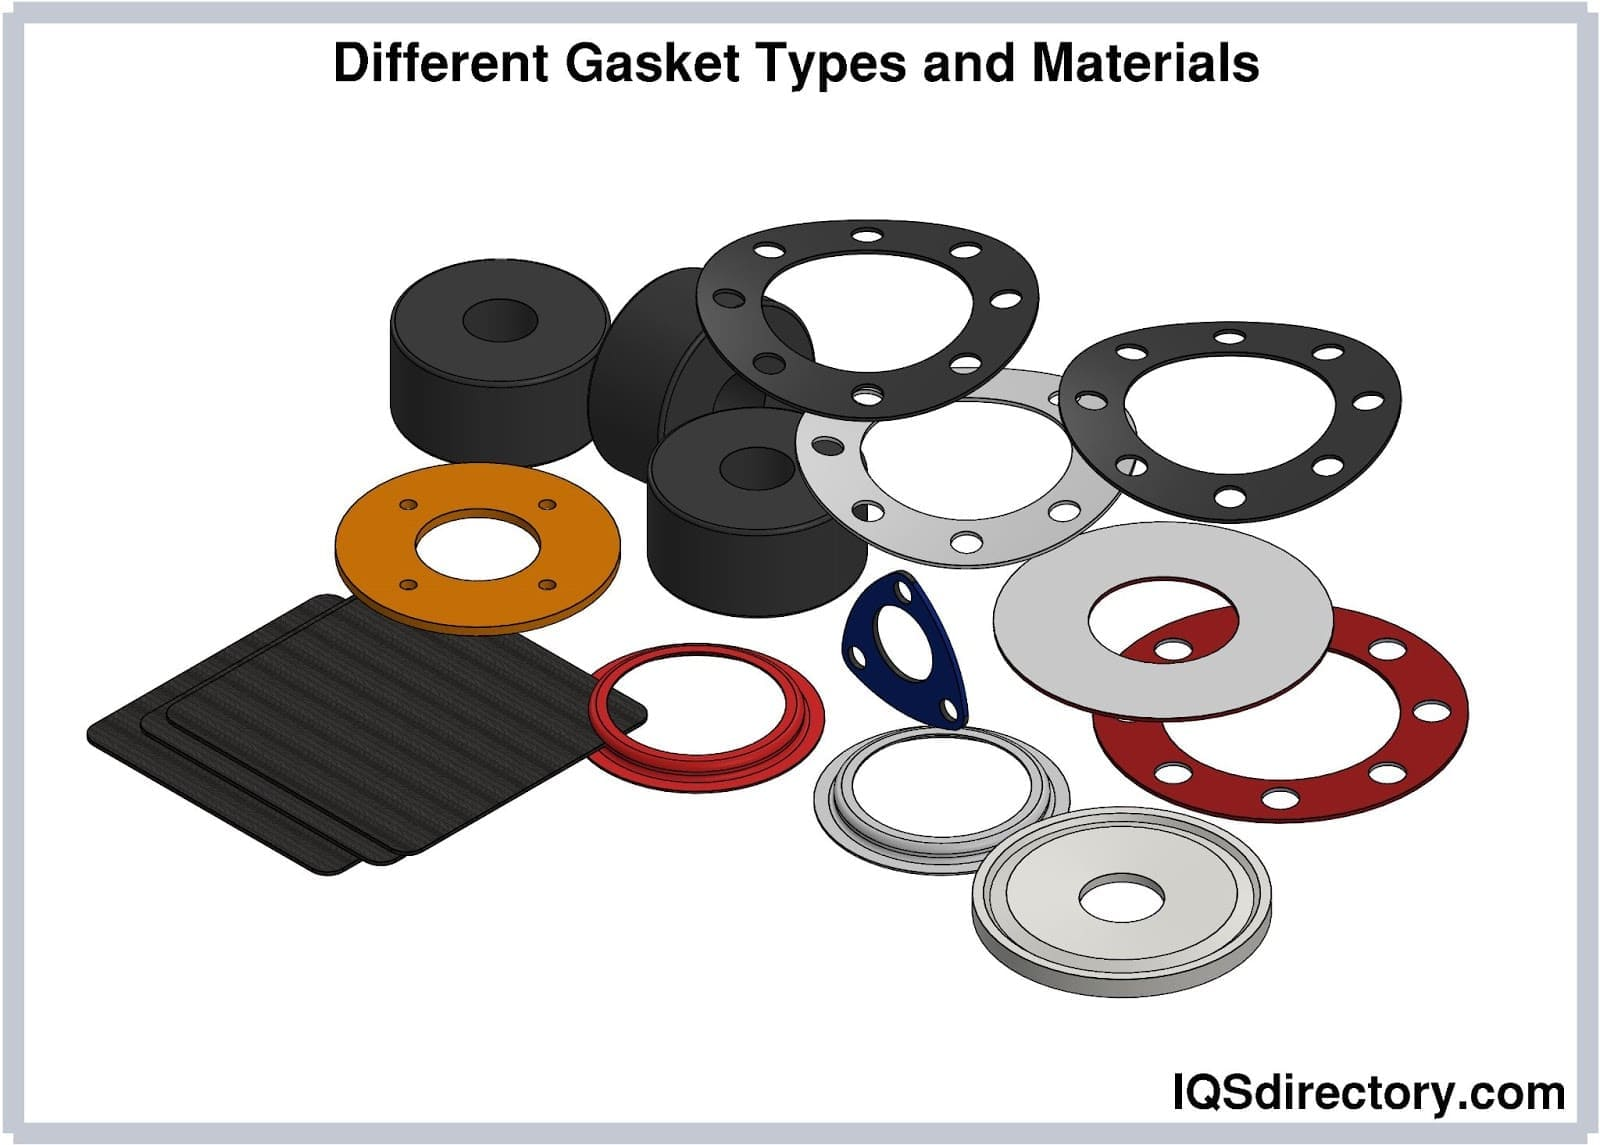 Different Gasket Types and Materials